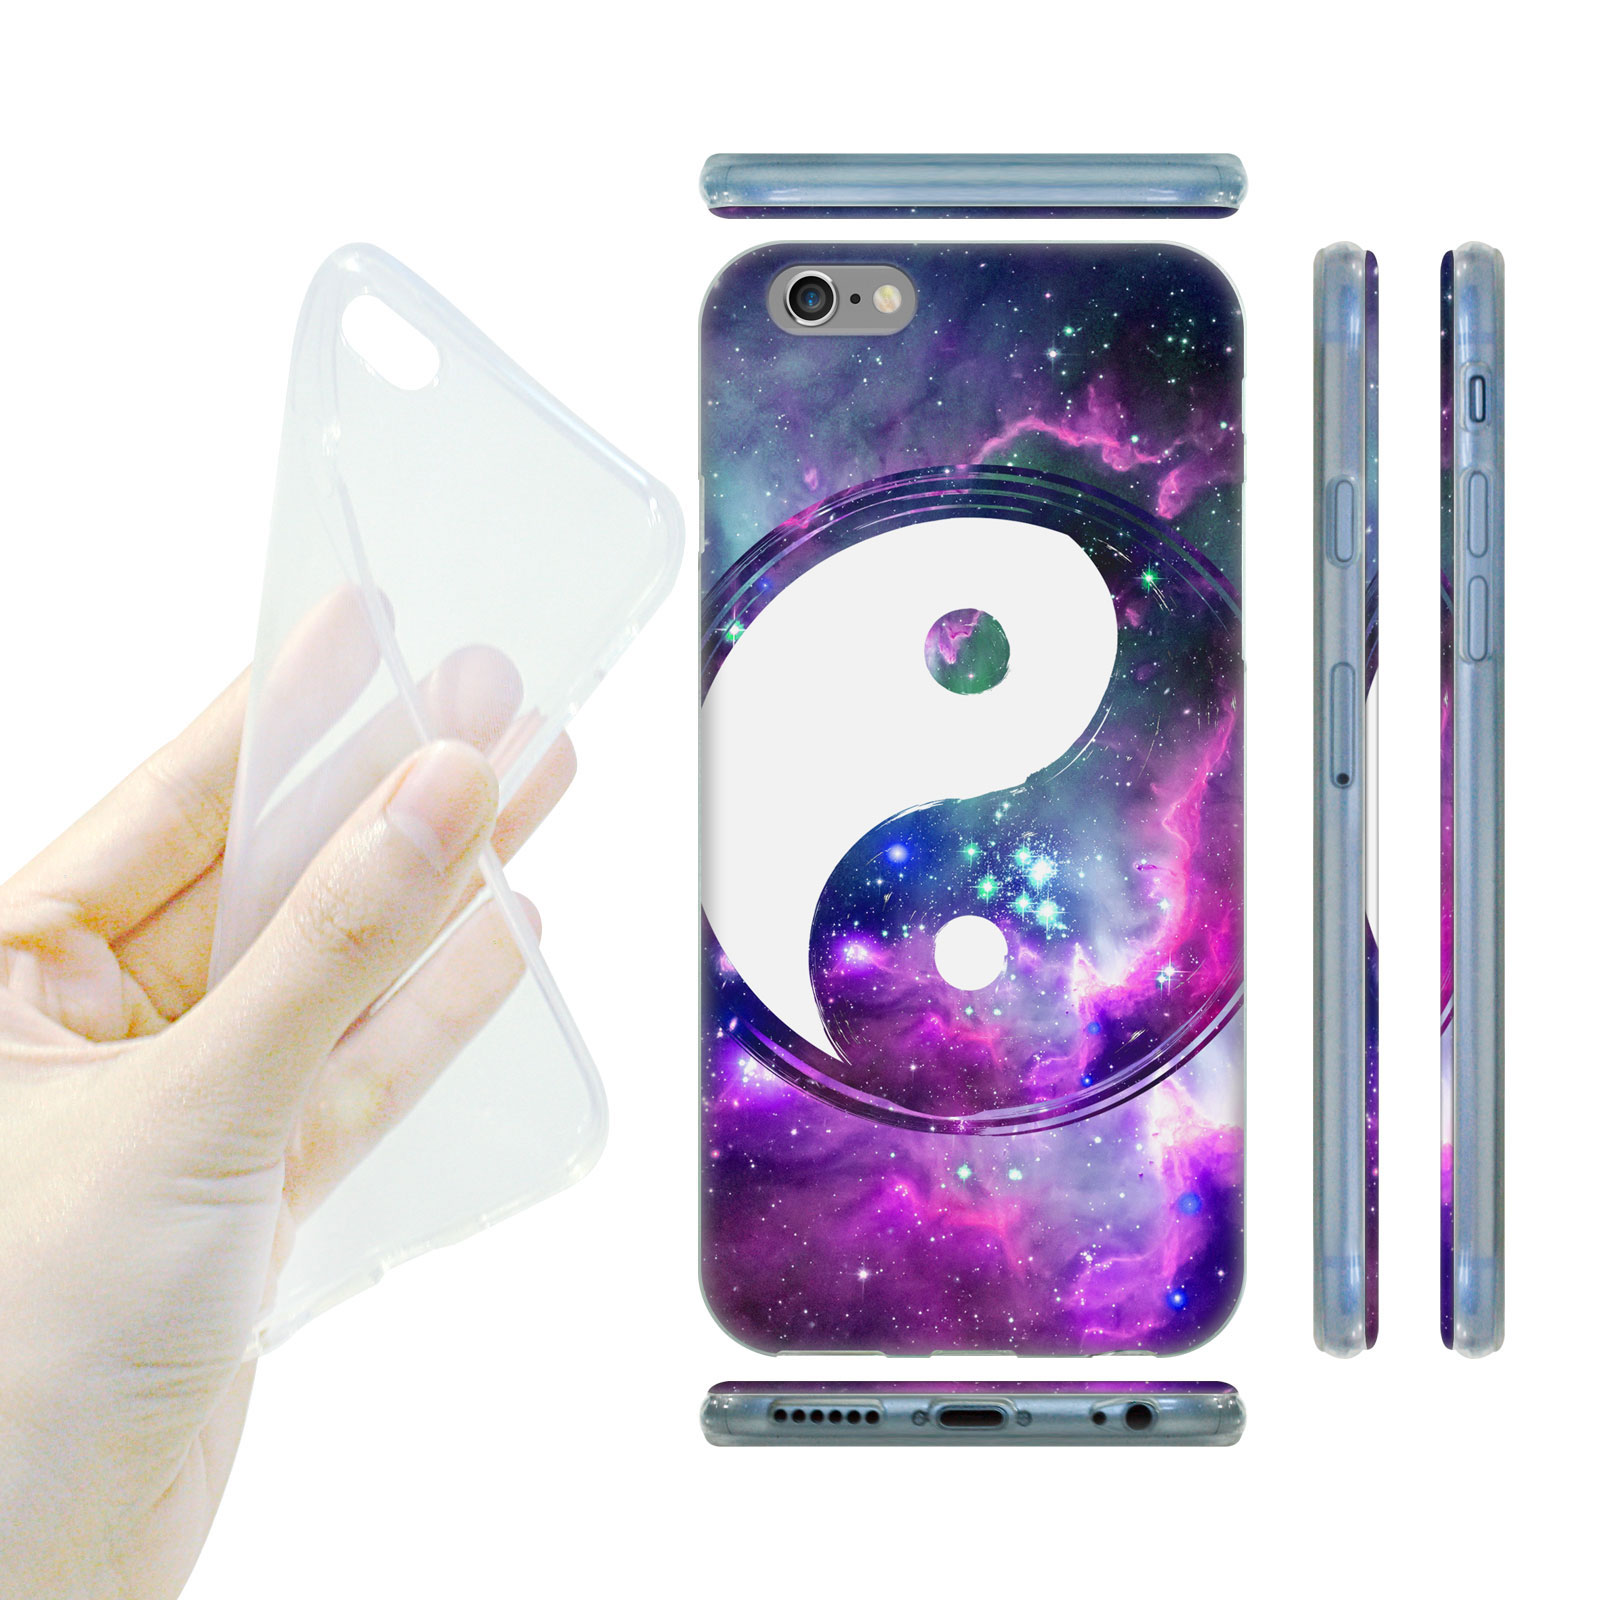 Case Design cute phone cases for girls : pouzdra a kryty na iphone 4 Book Covers